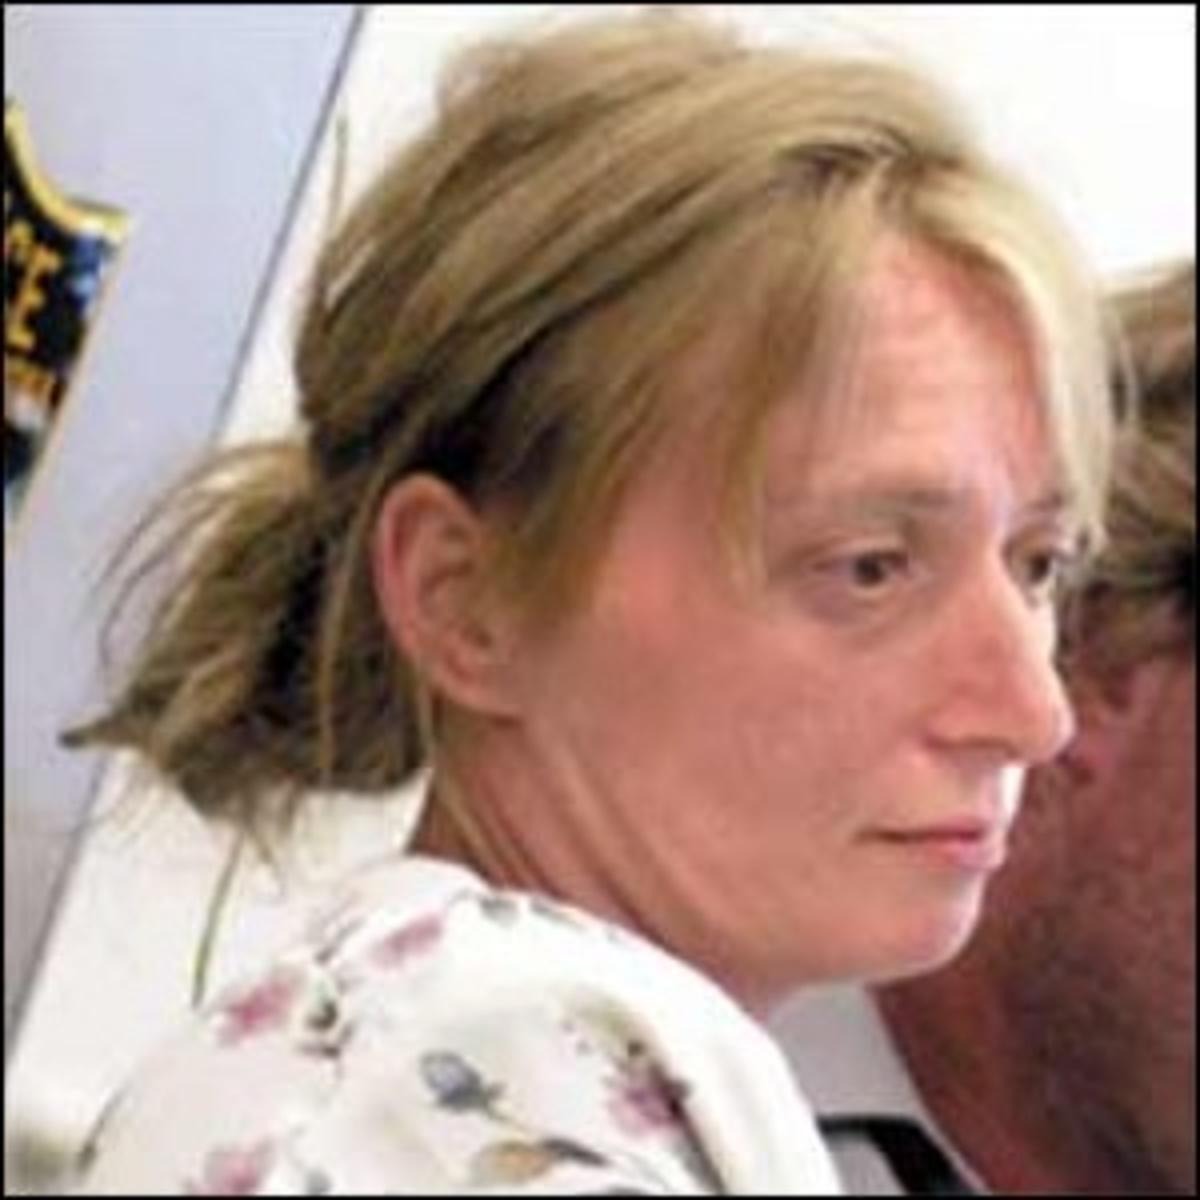 Missing woman jailed after ordeal | | azdailysun com